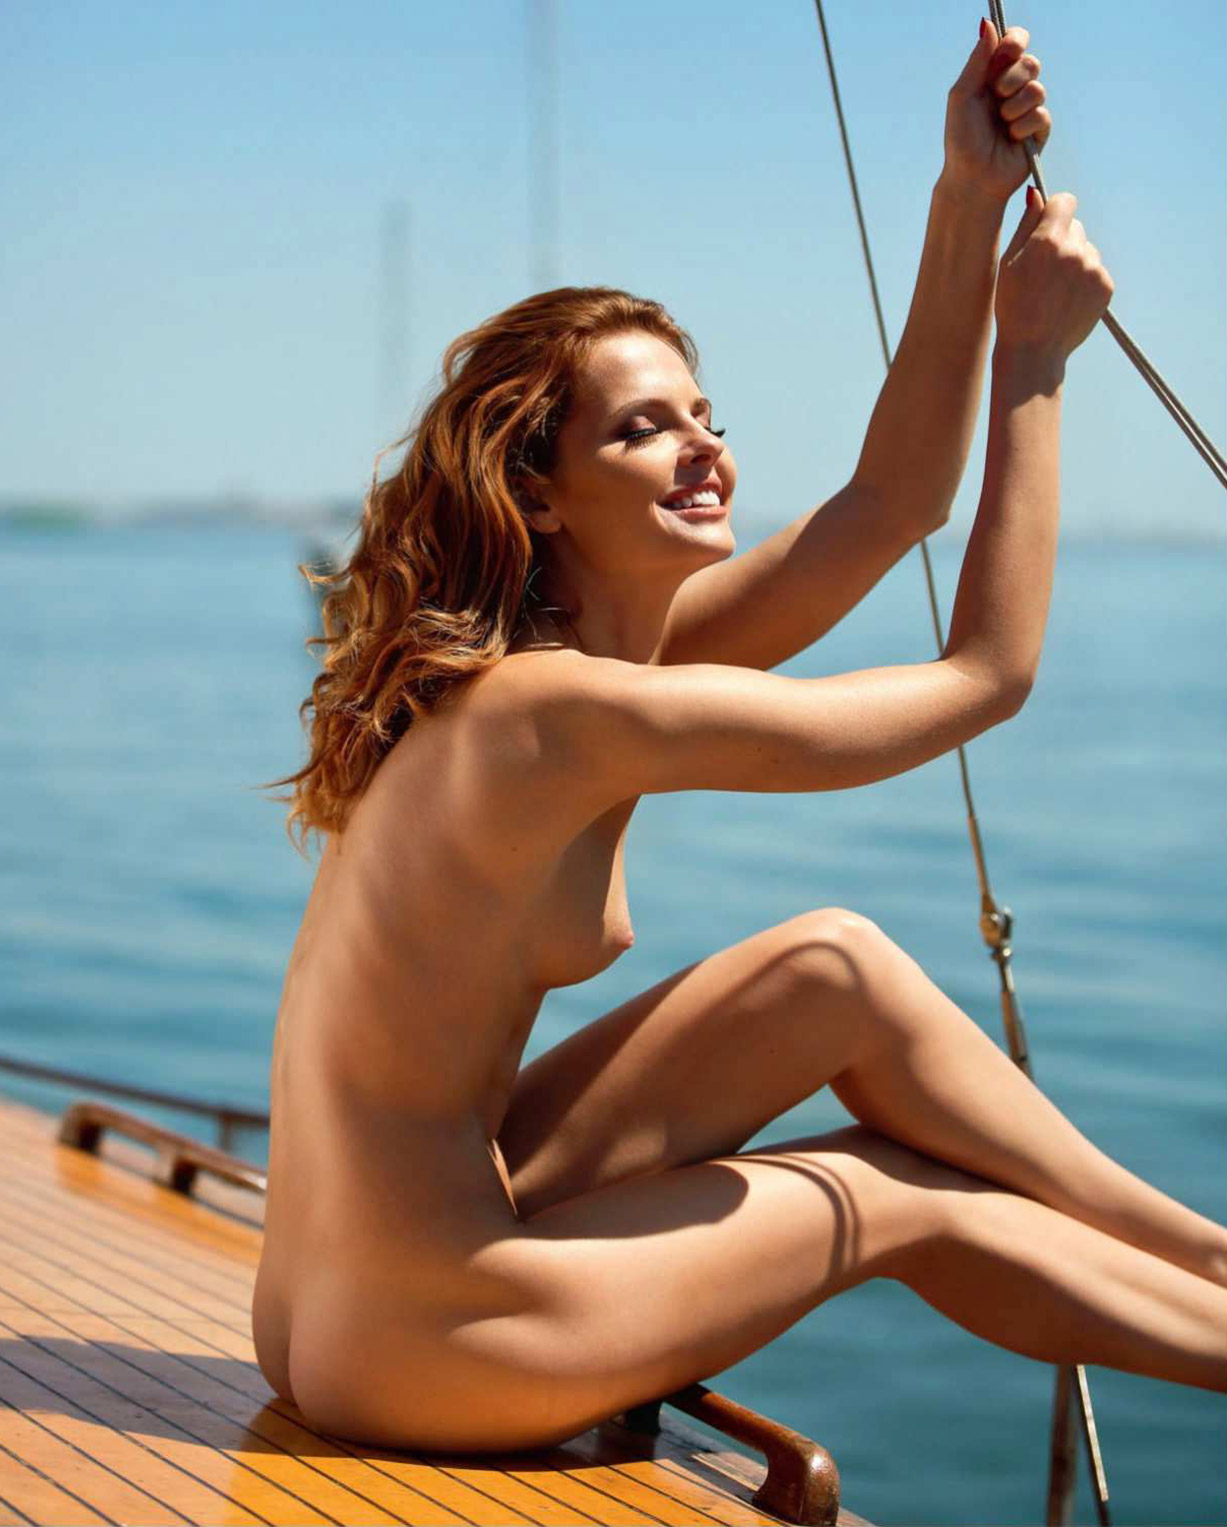 Playmate of the Month of July / Valeria Lakhina nude by Ana Dias - Playboy USA july/august 2018